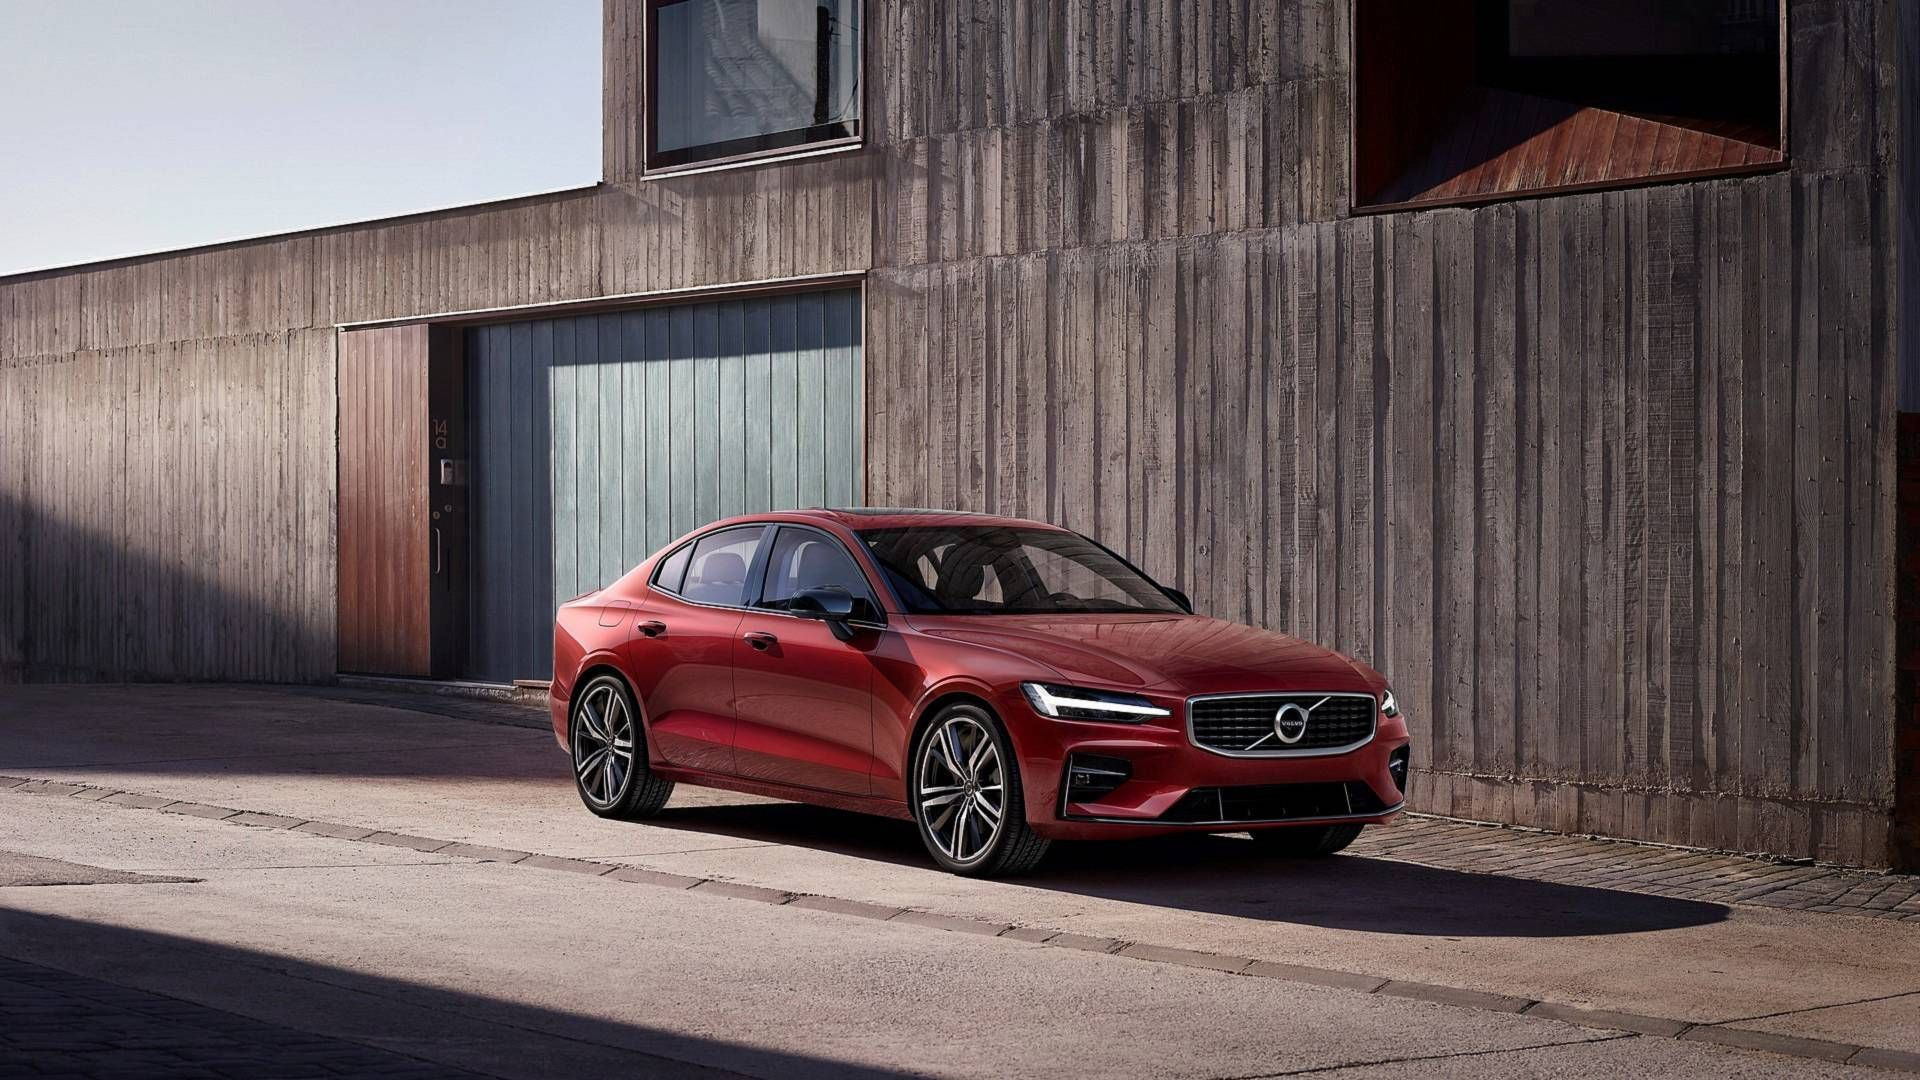 Volvo S60 could be a serious 3 Series competitor Volvo